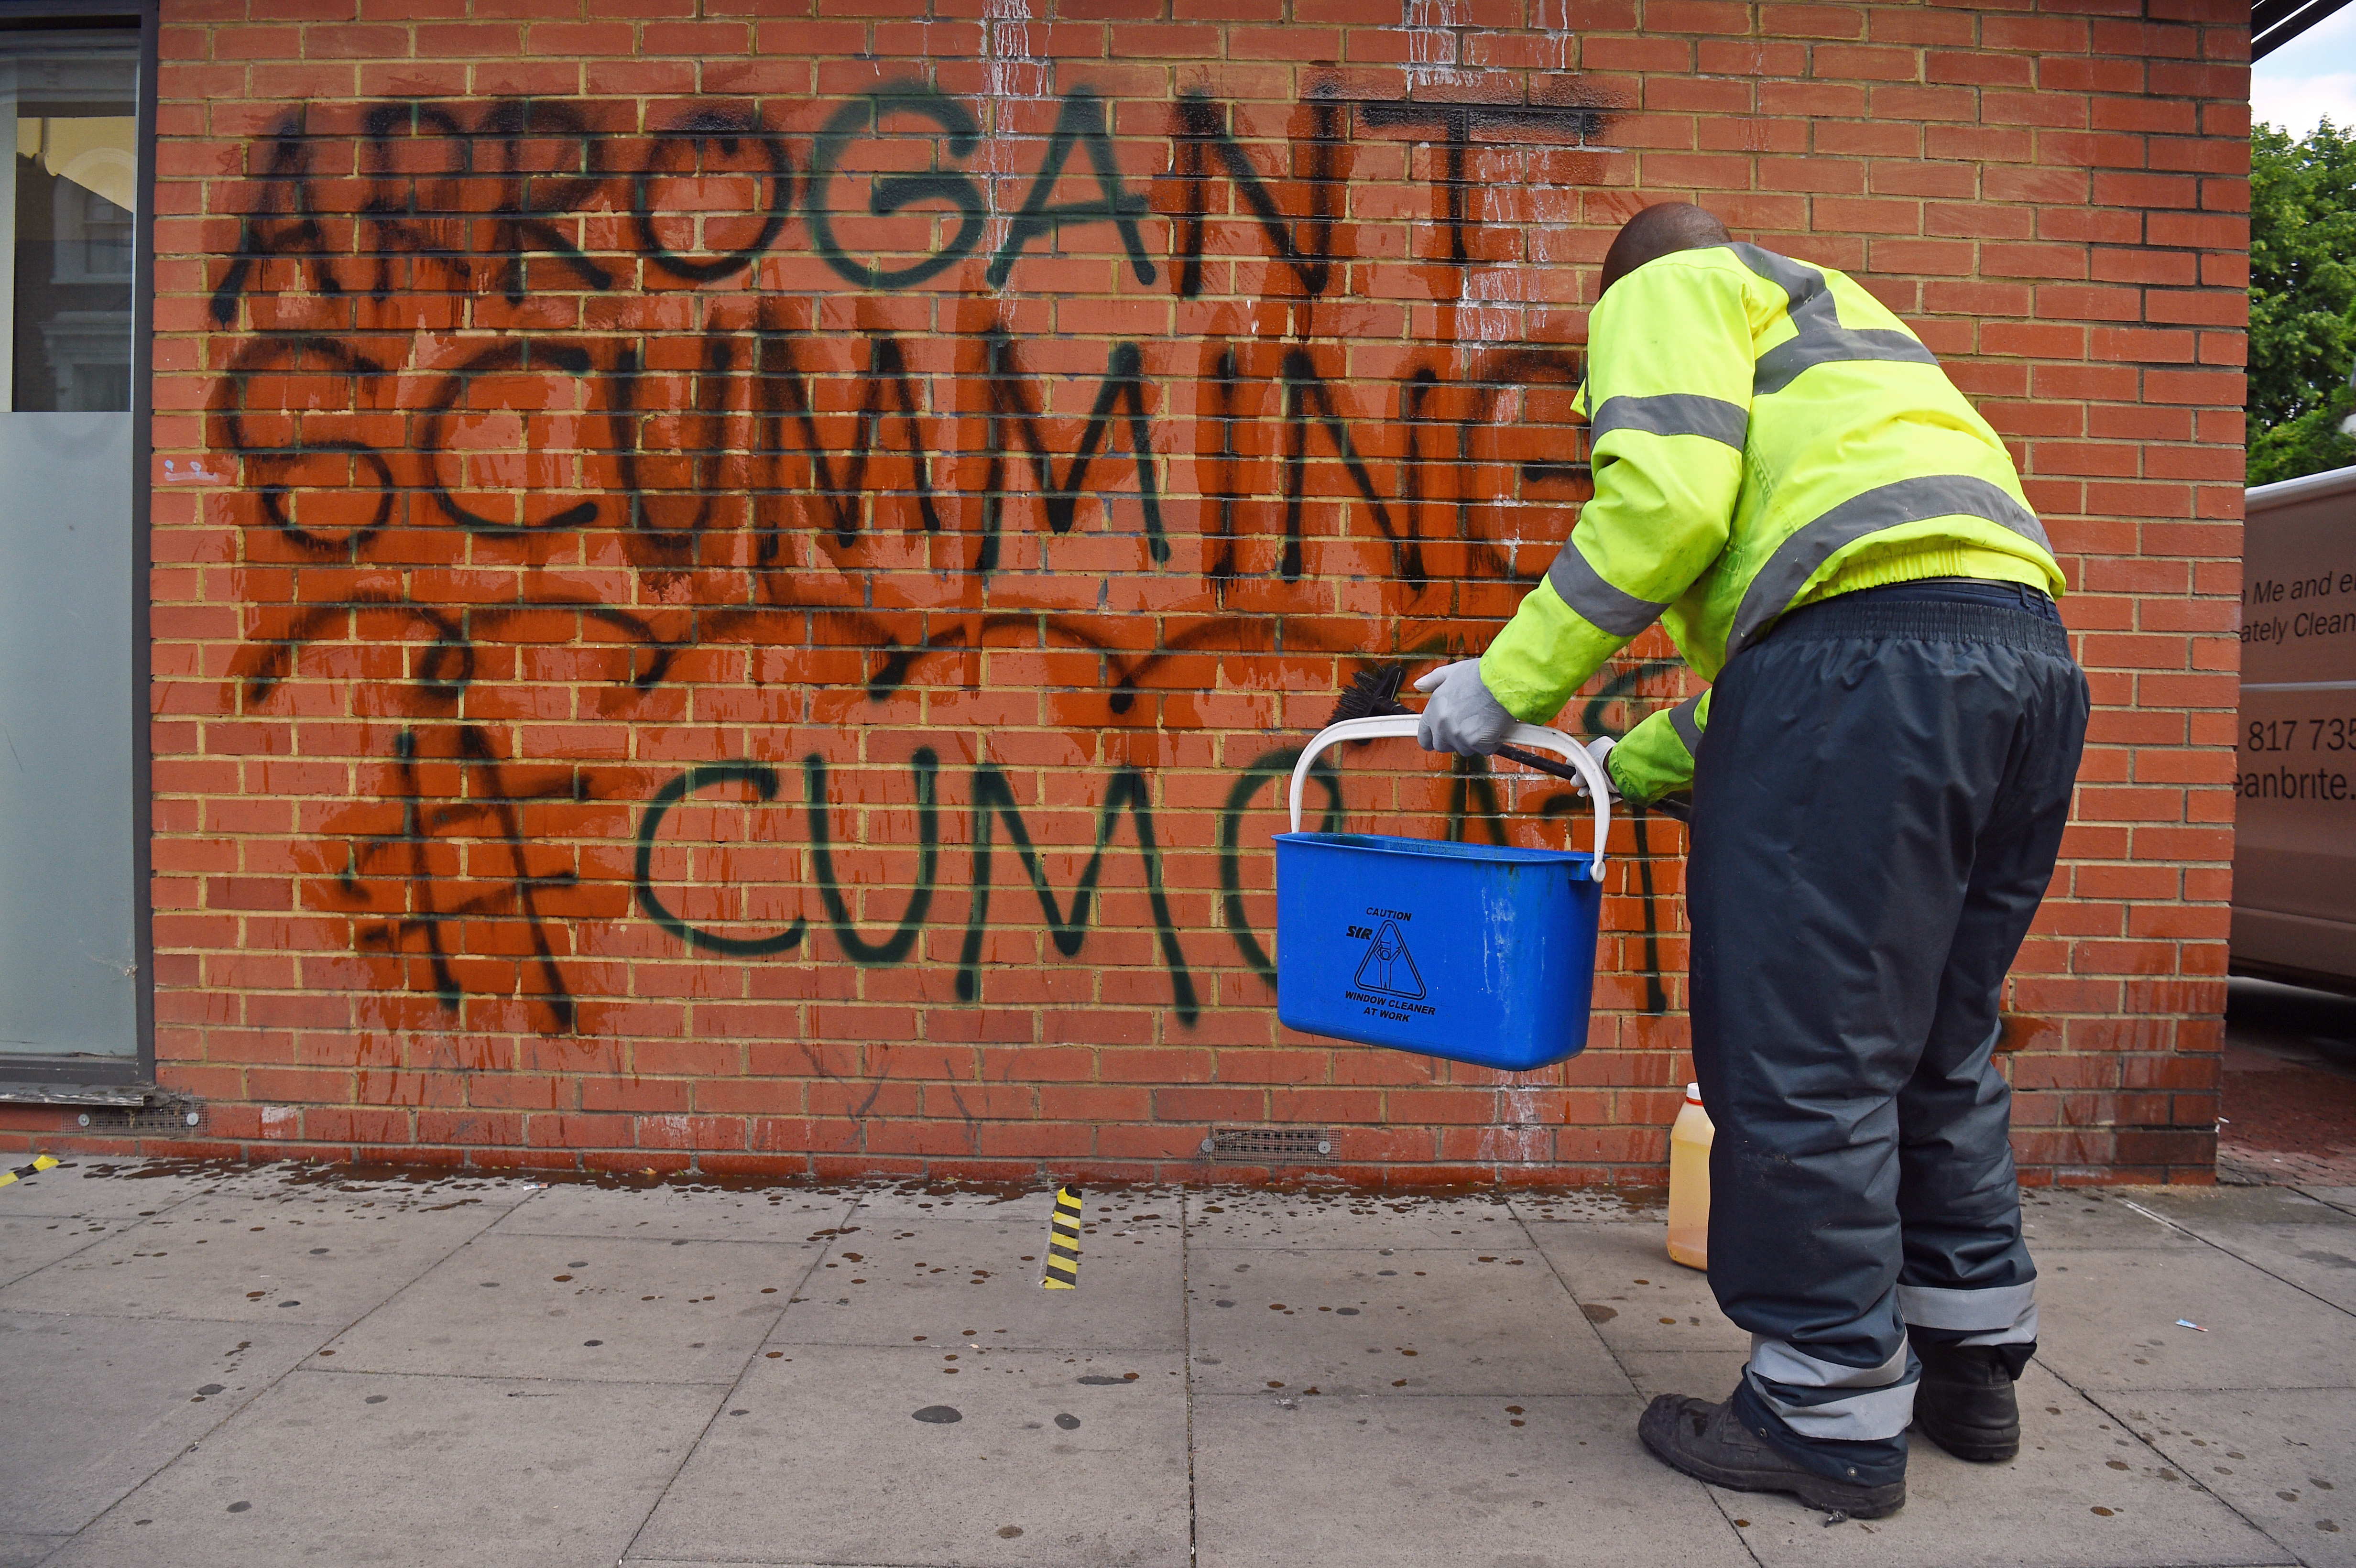 A workman removes graffiti from a wall near the north London home of the Prime Minister's top aide Dominic Cummings as the row over his Durham trip during the coronavirus lockdown continues.